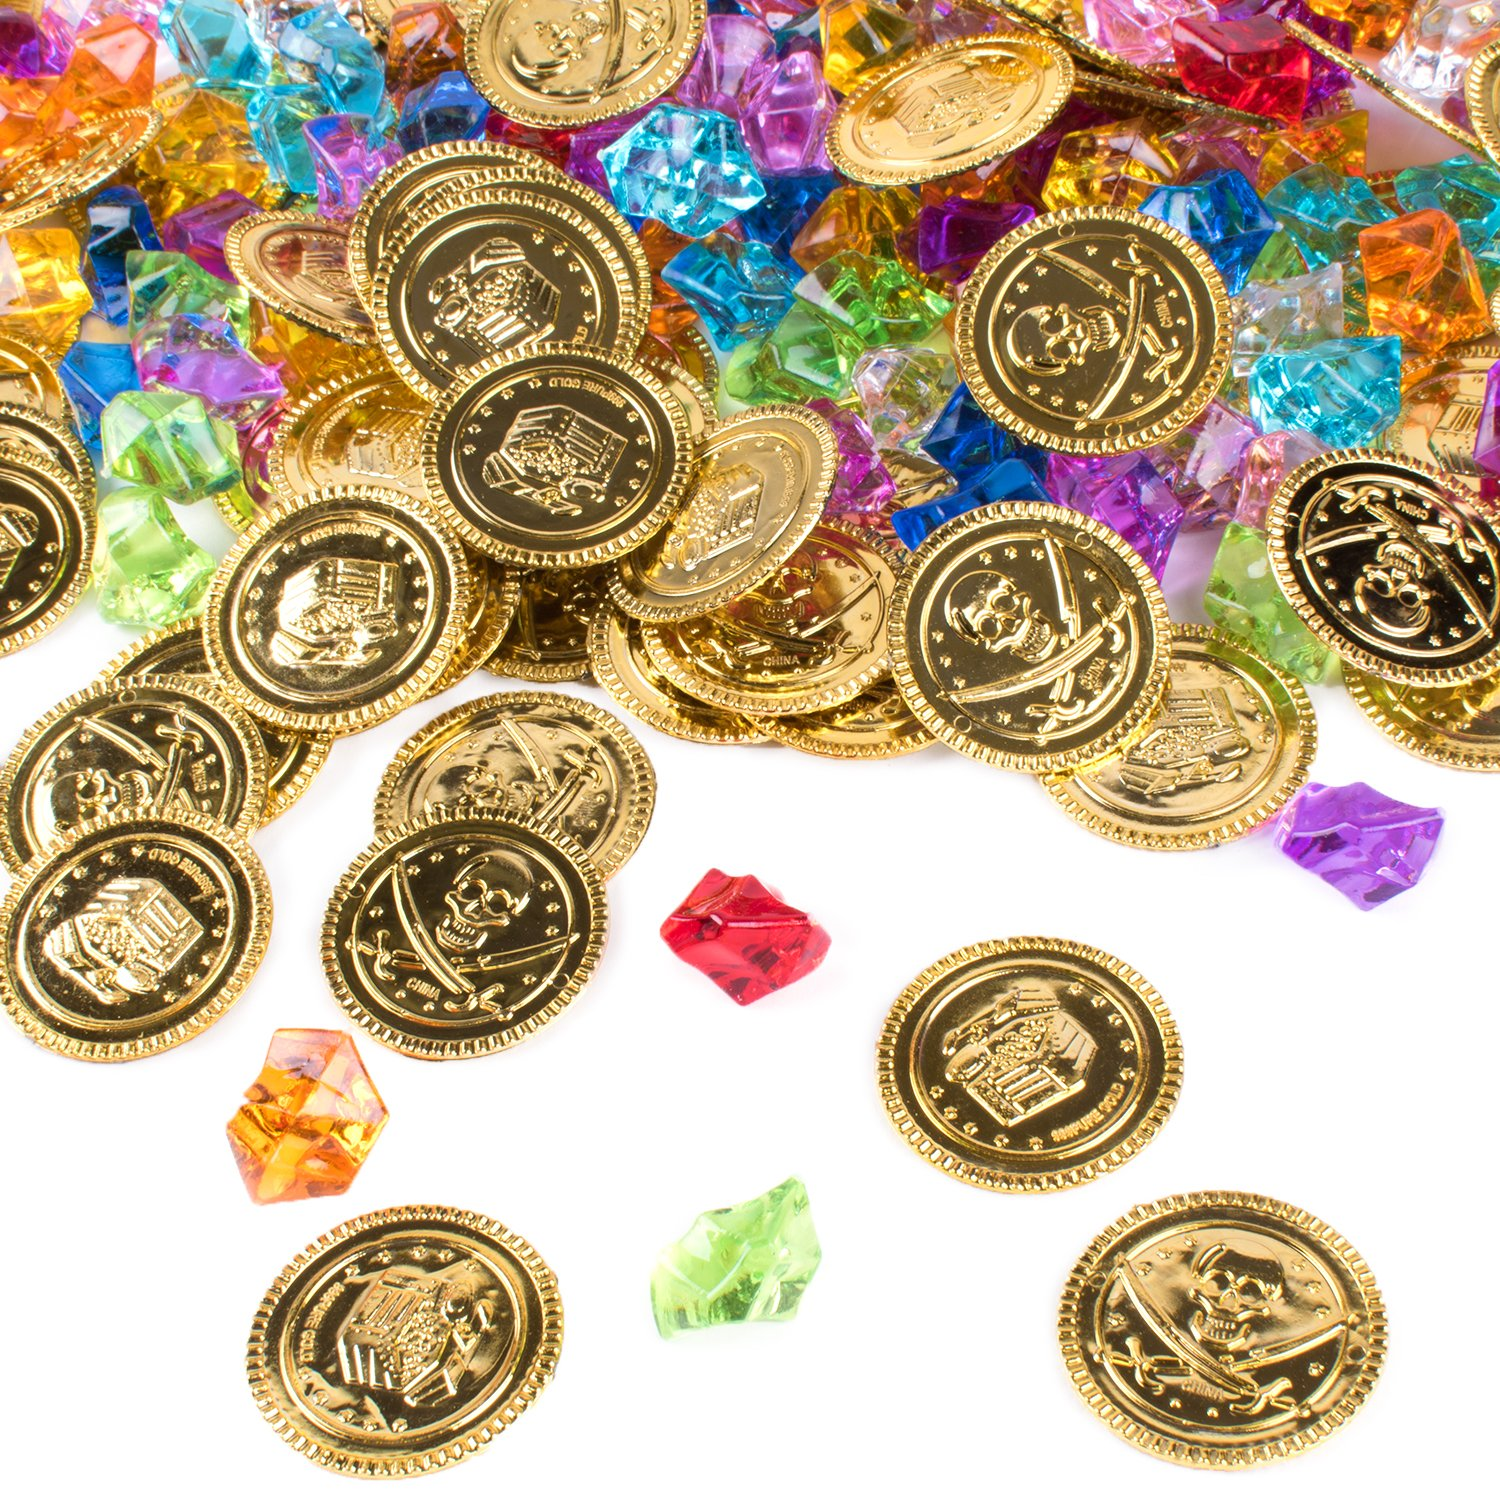 Super Z Outlet Pirate Gold Coins Buried Treasure and Pirate Gems Jewelry Playset Activity Game Piece Pack Party Favor Decorations (120 Coins + 120 Gems)